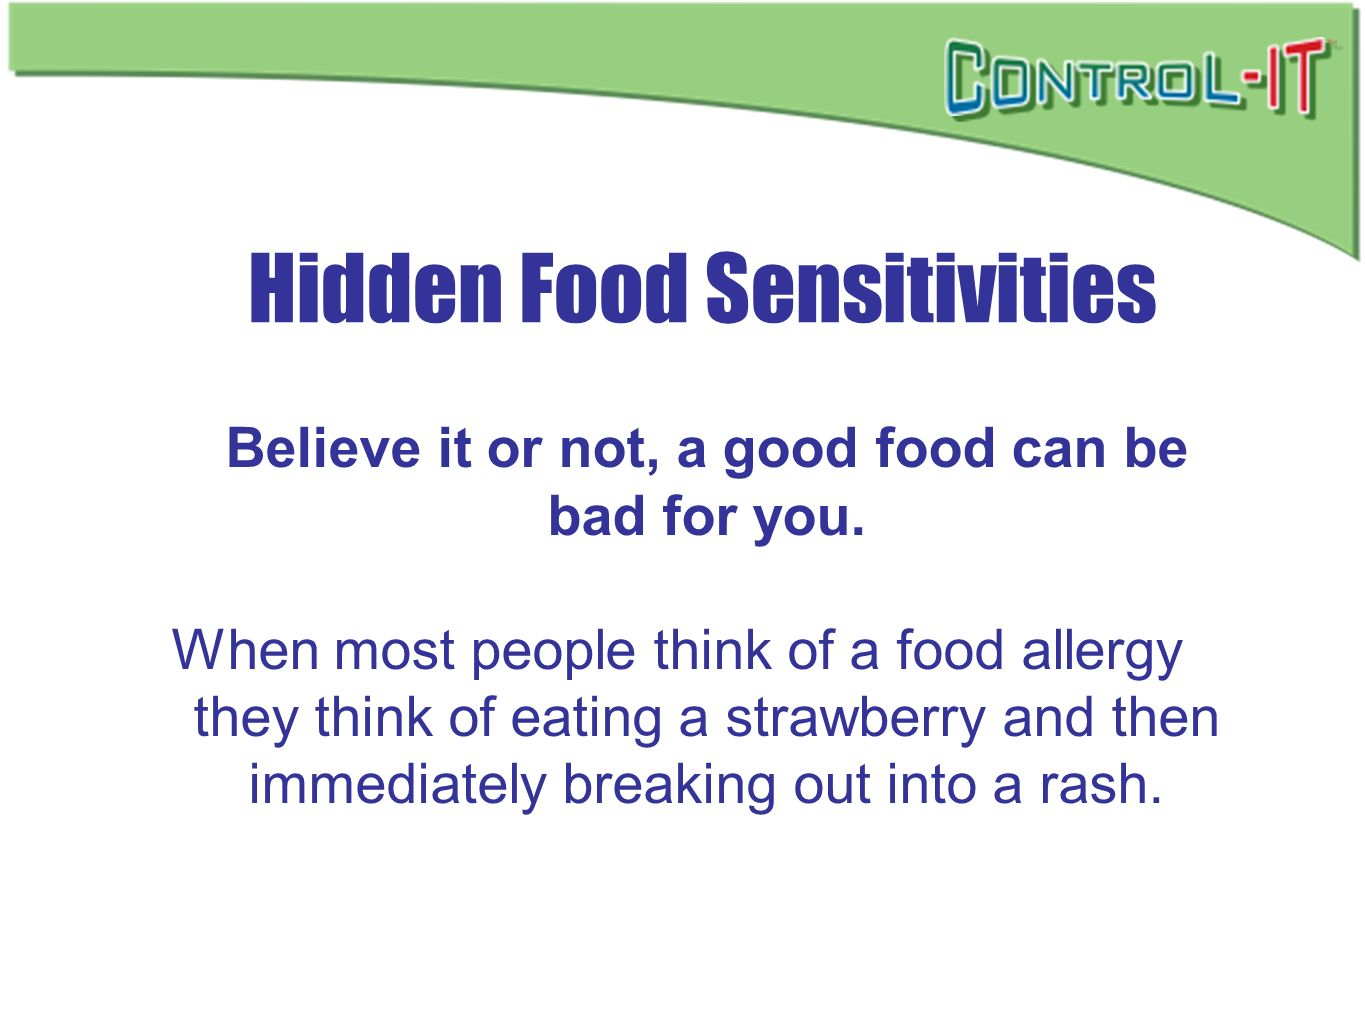 Hidden Food Sensitivities Believe it or not, a good food can be bad for you. When most people think of a food allergy they think of eating a strawberr